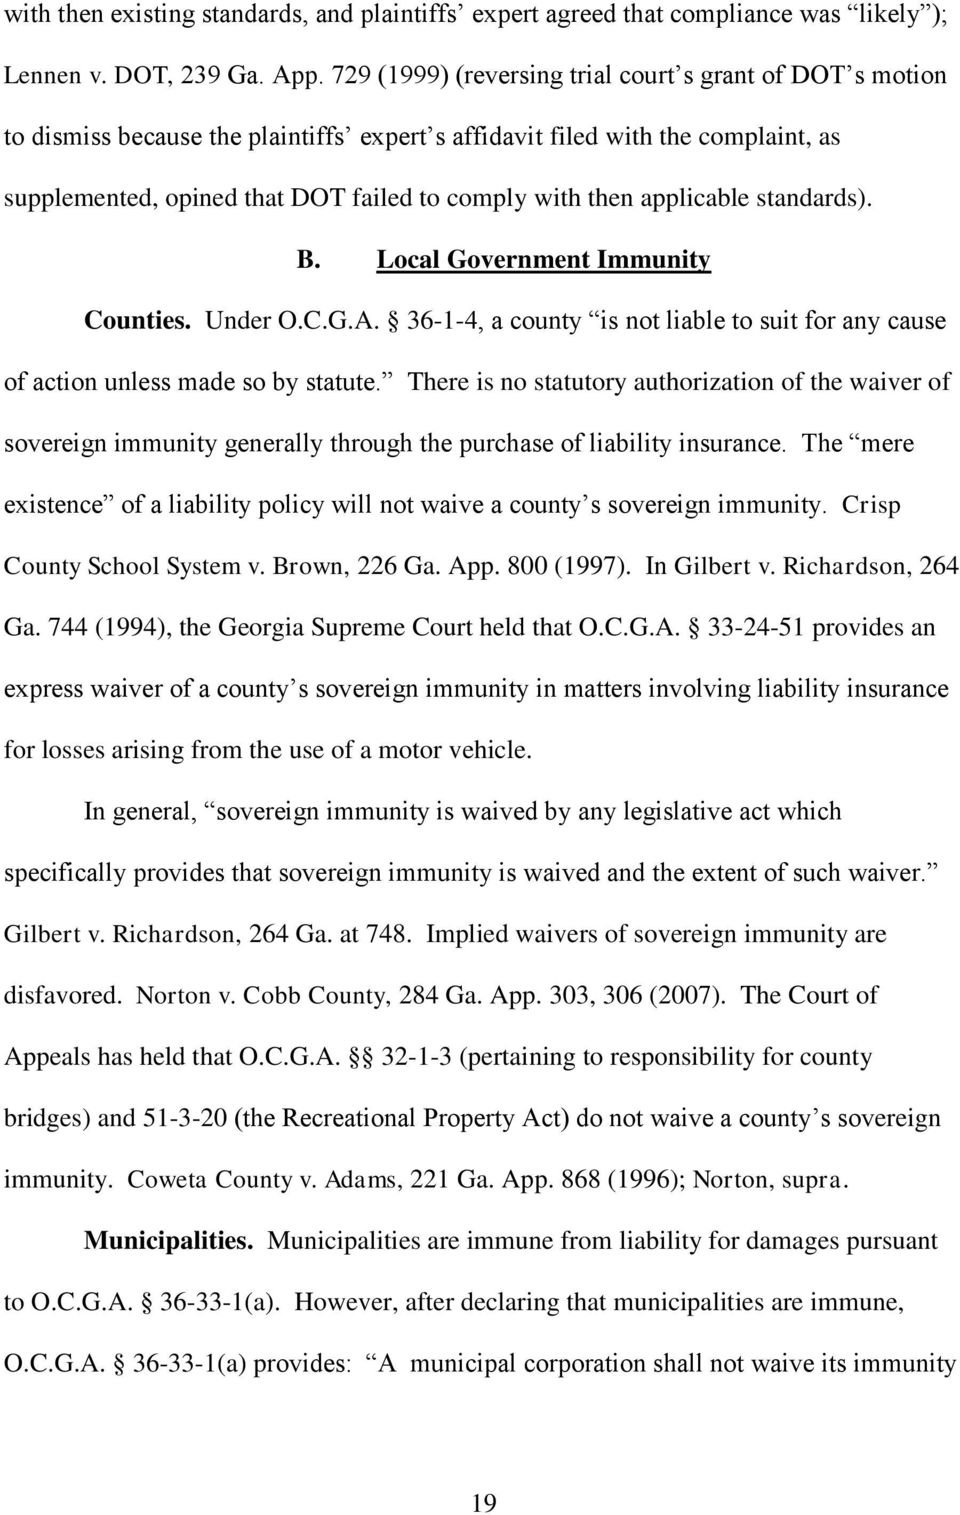 applicable standards). B. Local Government Immunity Counties. Under O.C.G.A. 36-1-4, a county is not liable to suit for any cause of action unless made so by statute.